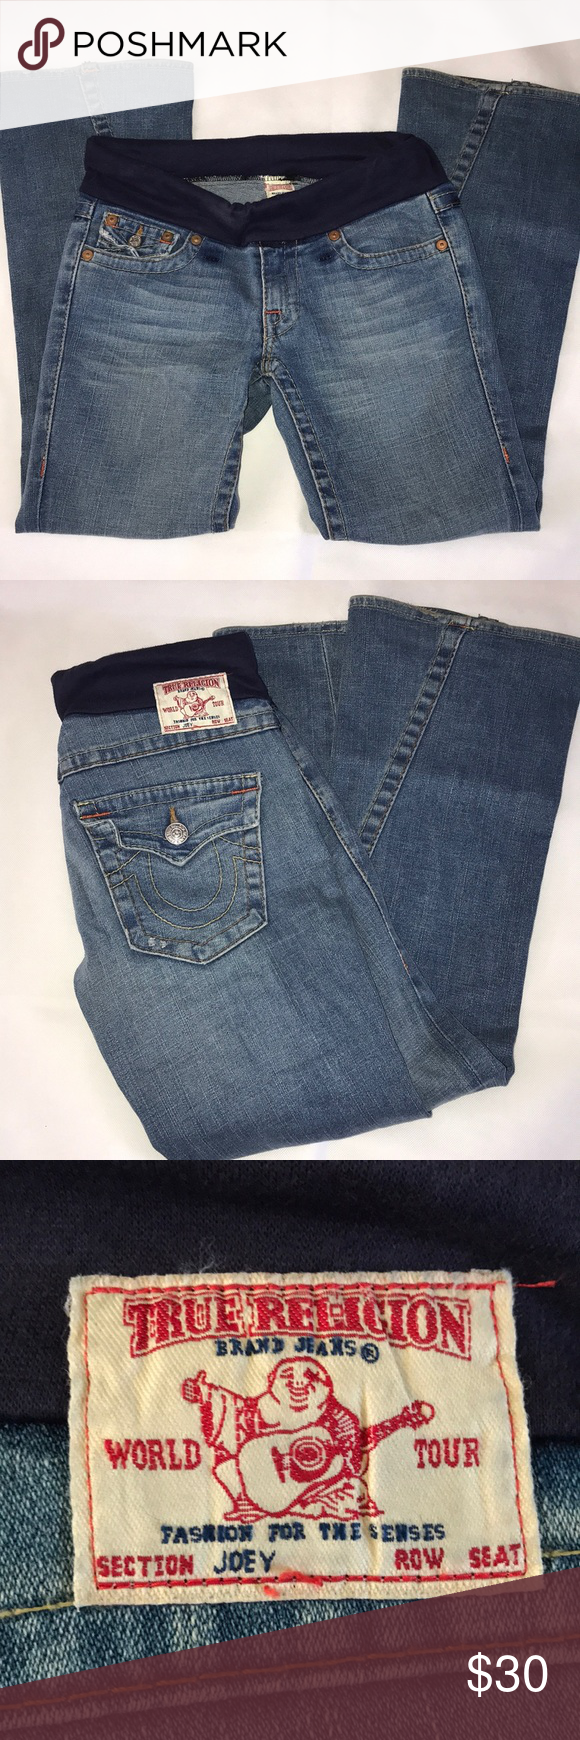 4d57791abf7b6 True religion maternity jeans Sz 28 These are Joey jeans size 28 they have  maternity band